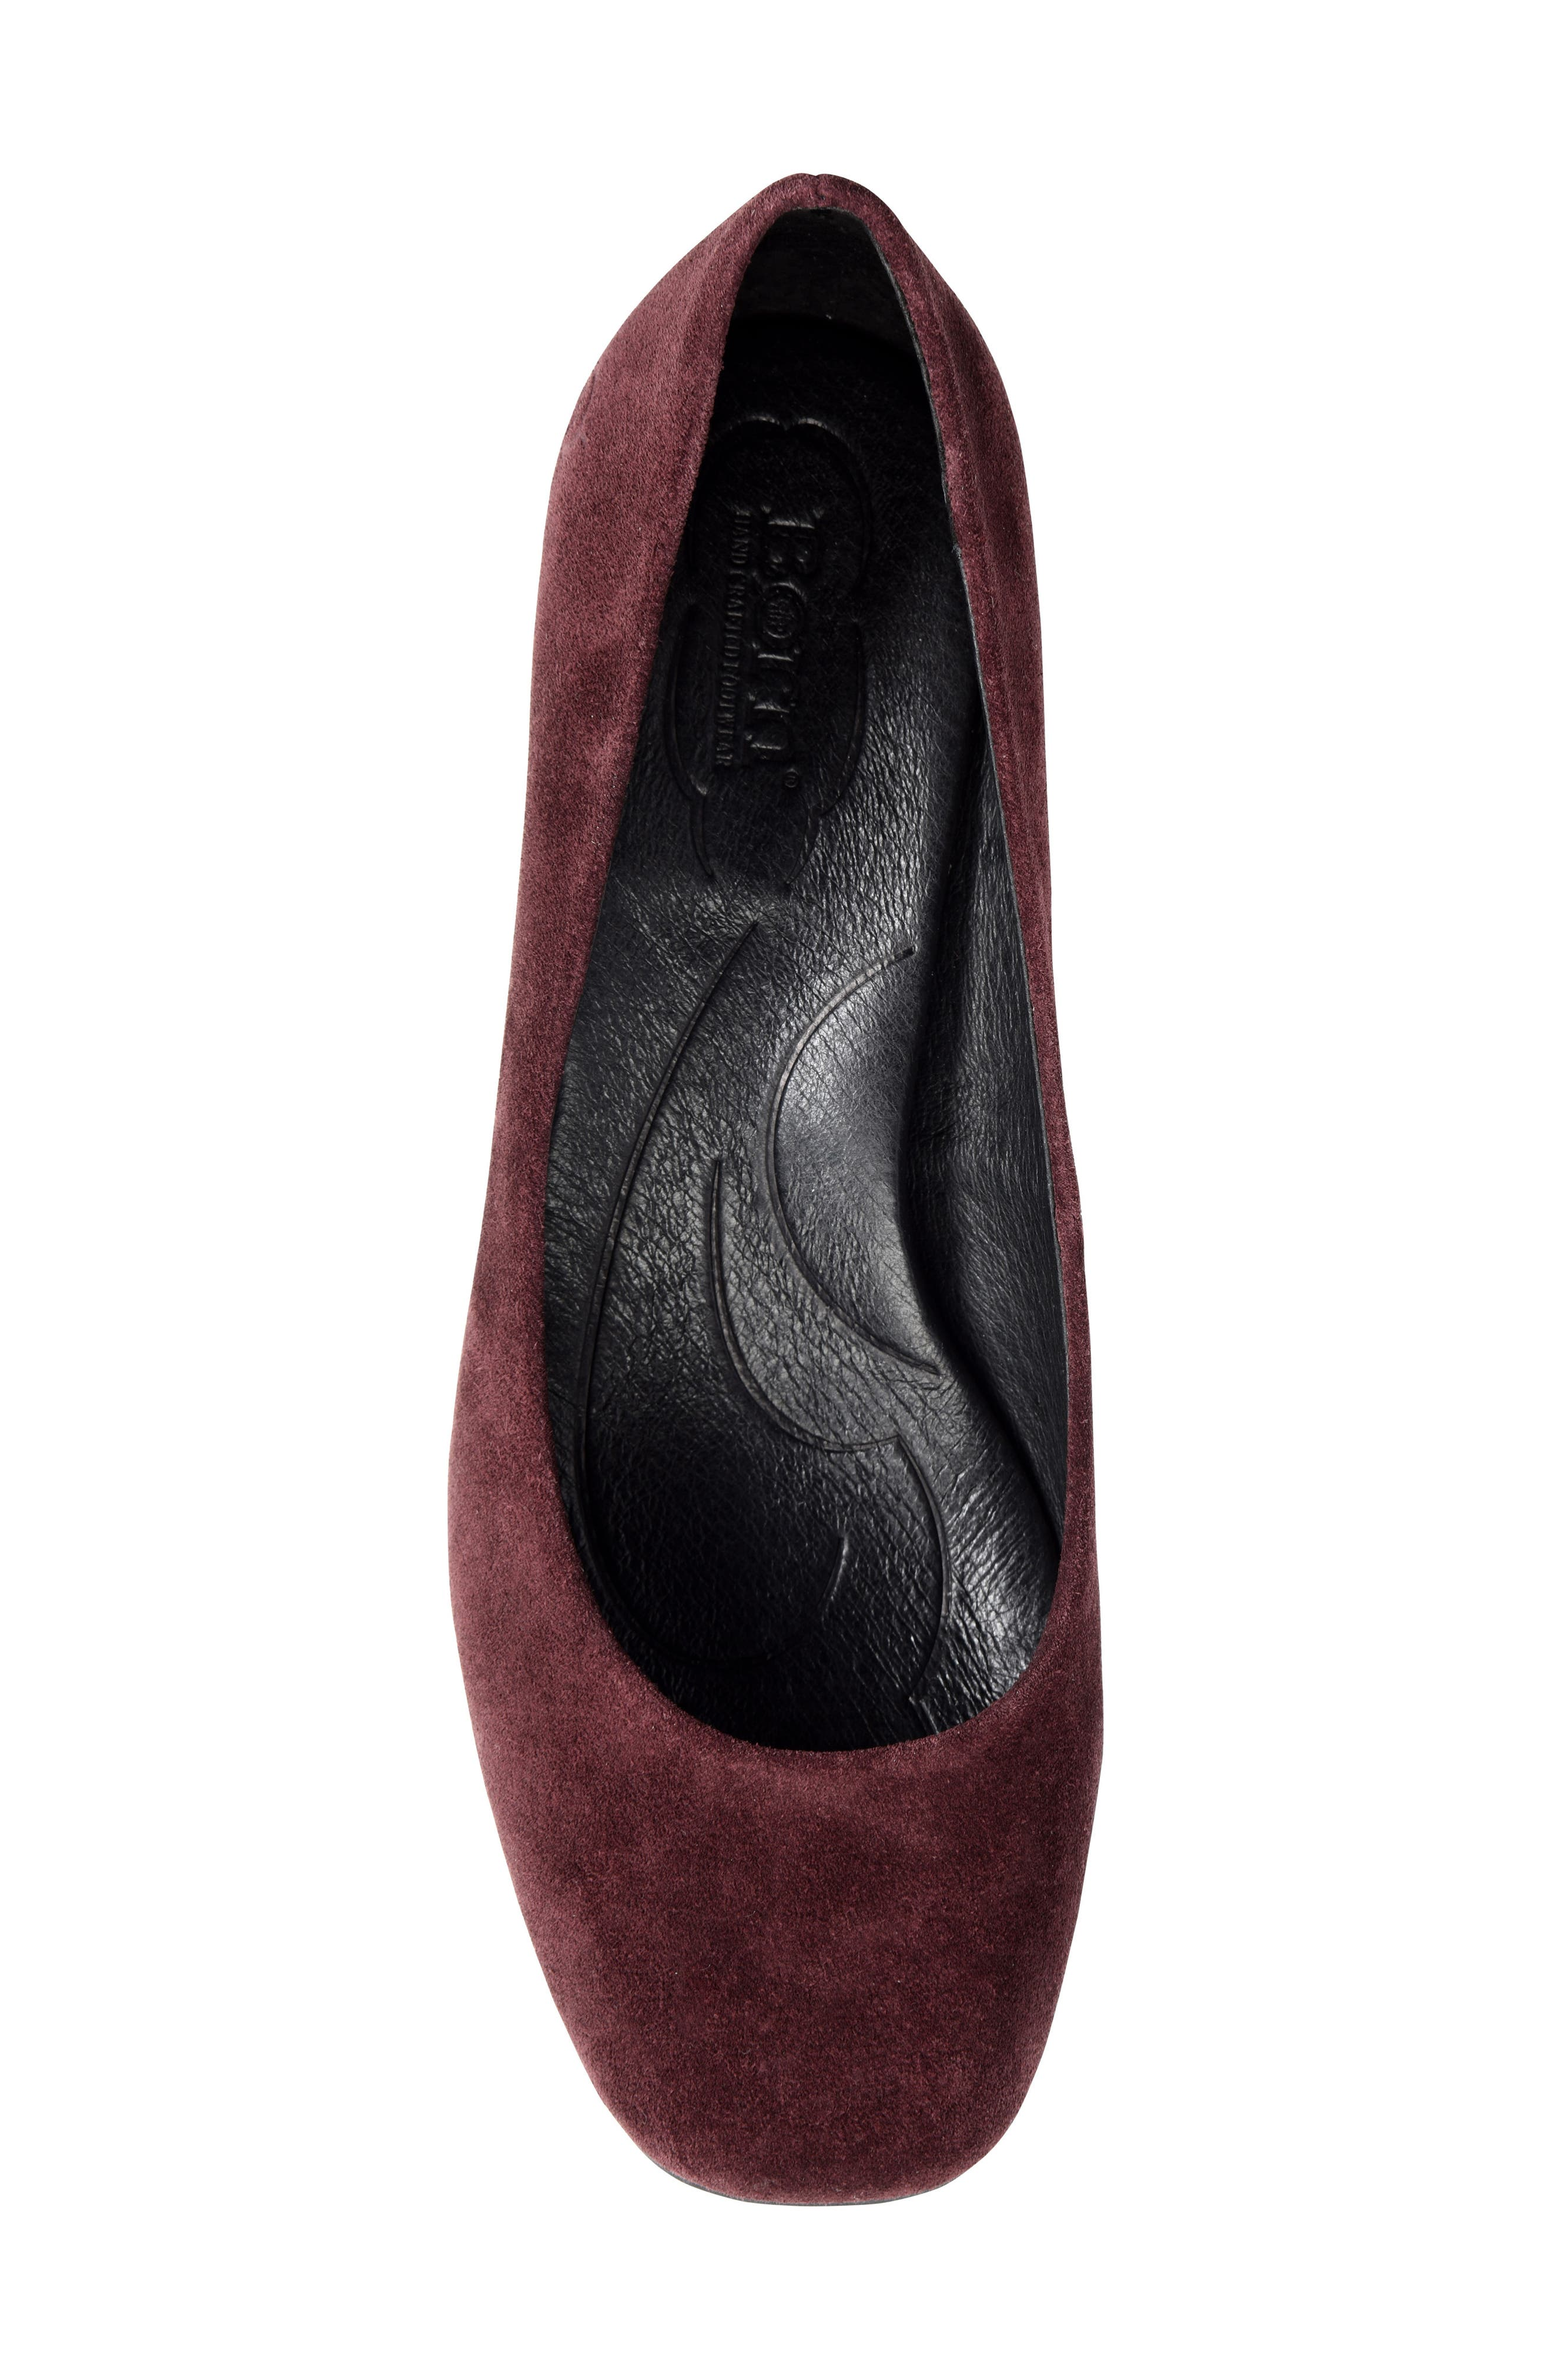 Amery Pump,                             Alternate thumbnail 5, color,                             Burgundy Suede